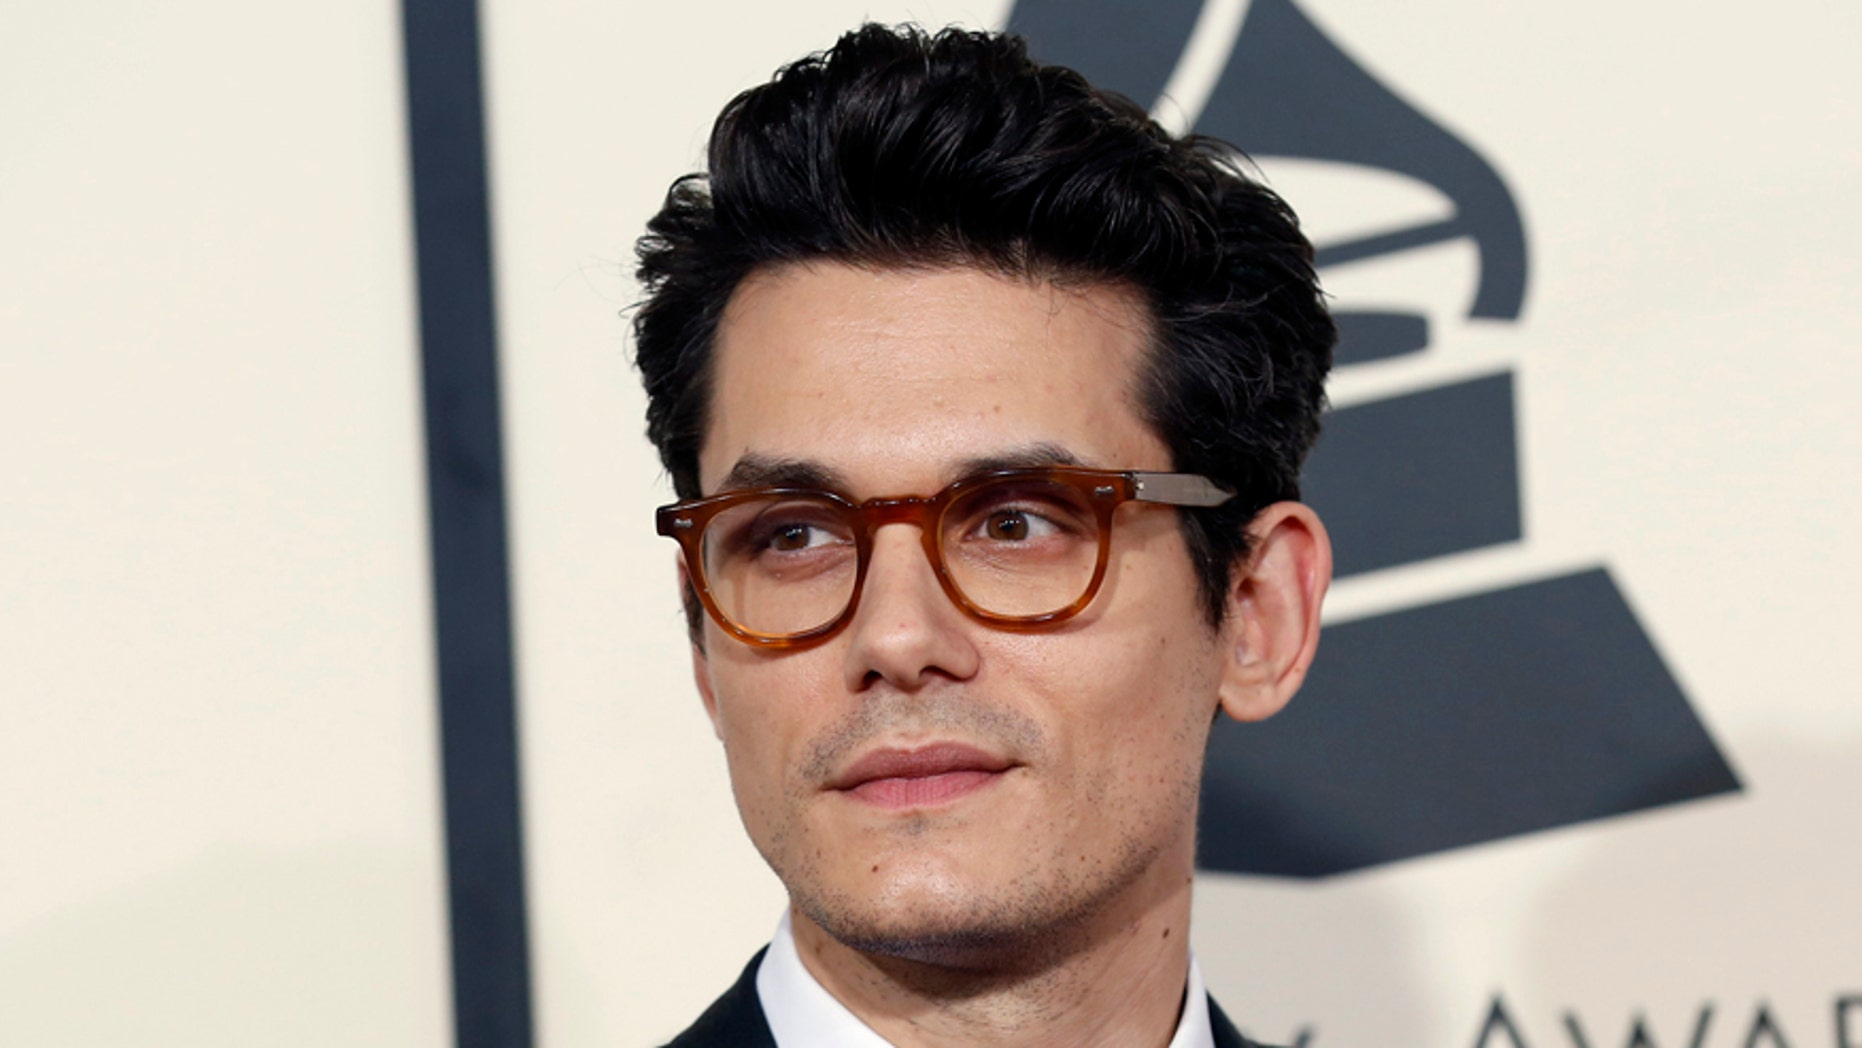 Singer John Mayer arrives at the 57th annual Grammy Awards in Los Angeles, California - Mario Anzuoni (REUTERS)